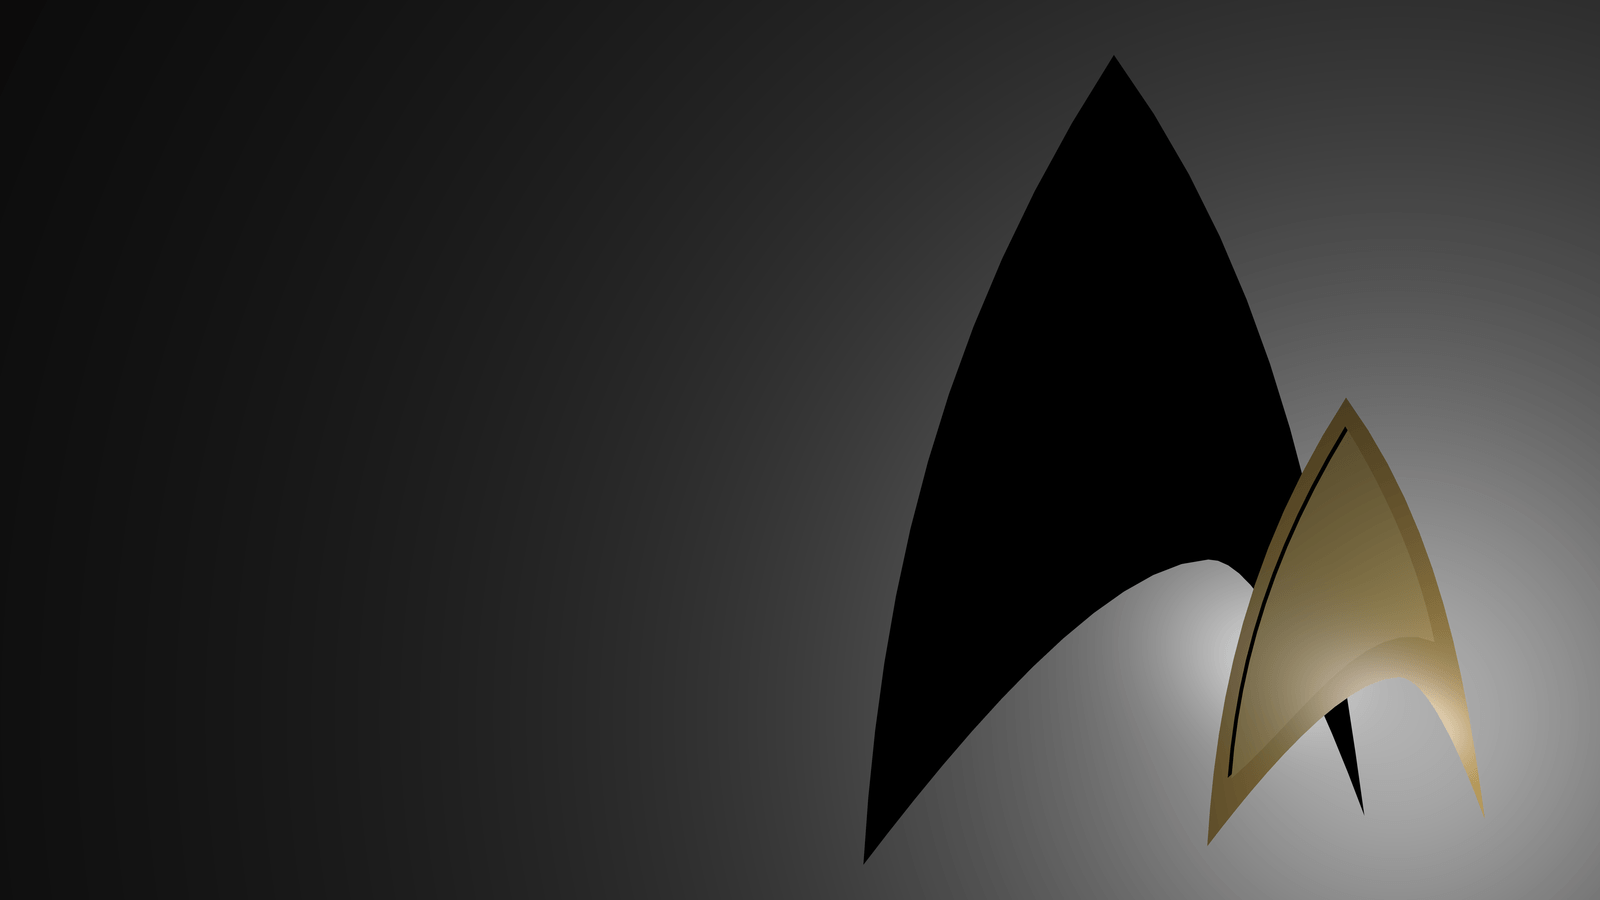 star trek wallpaper by - photo #15